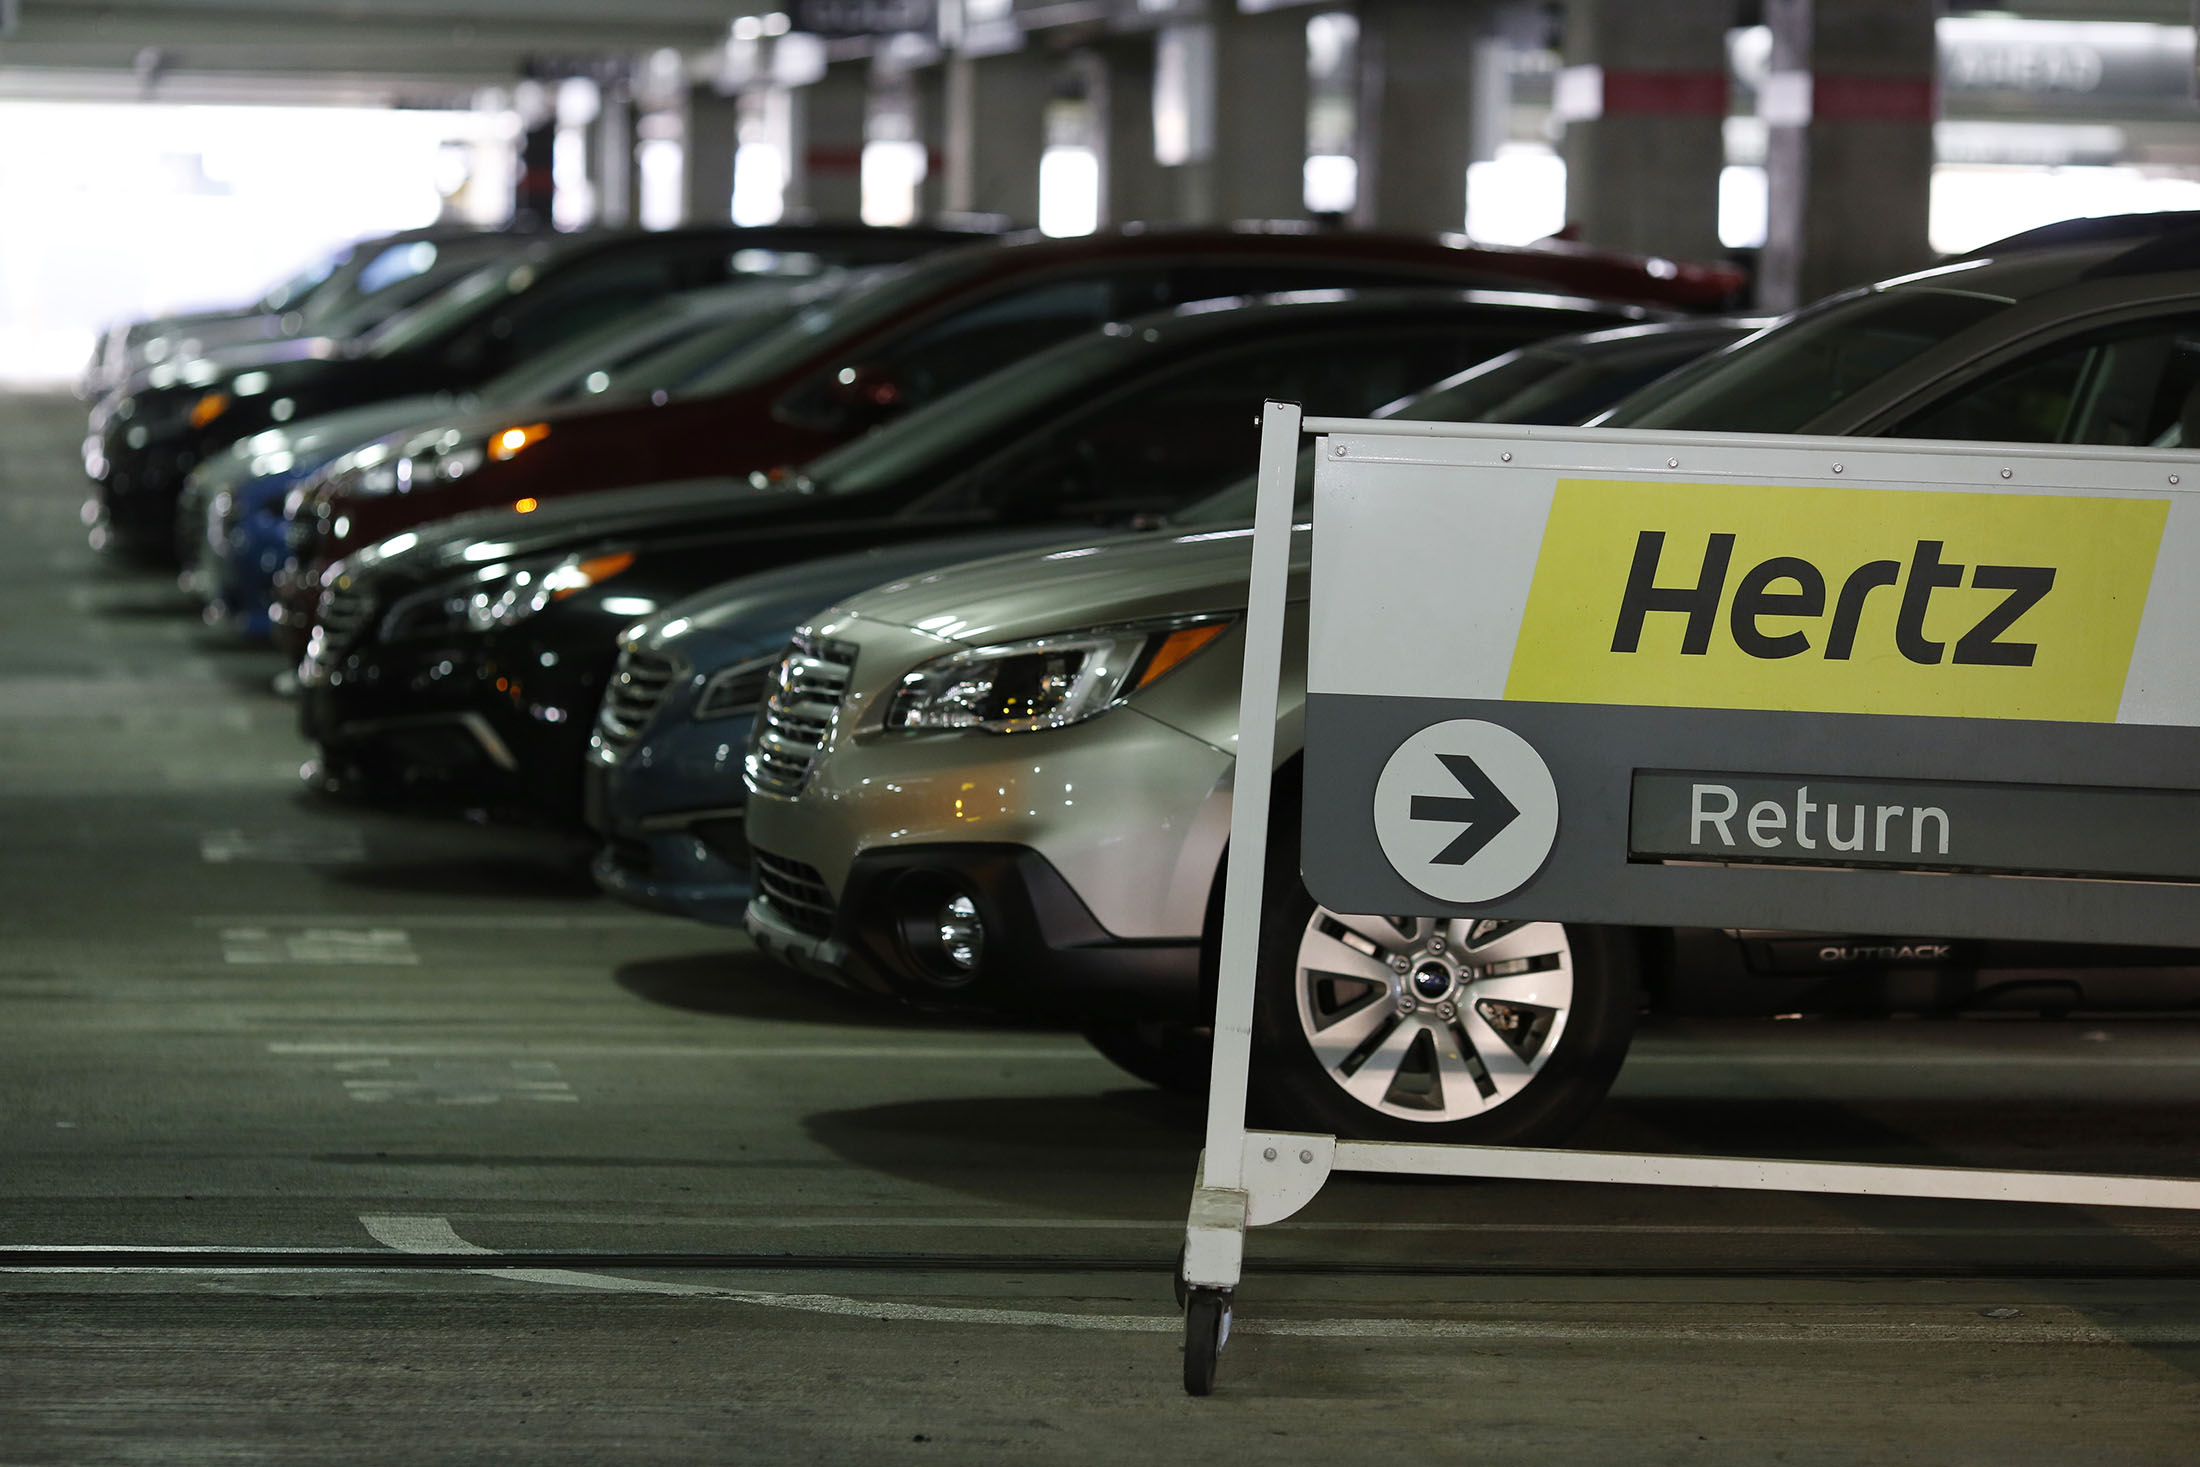 hertz shares bear brunt of freak out over used car price drop bloomberg